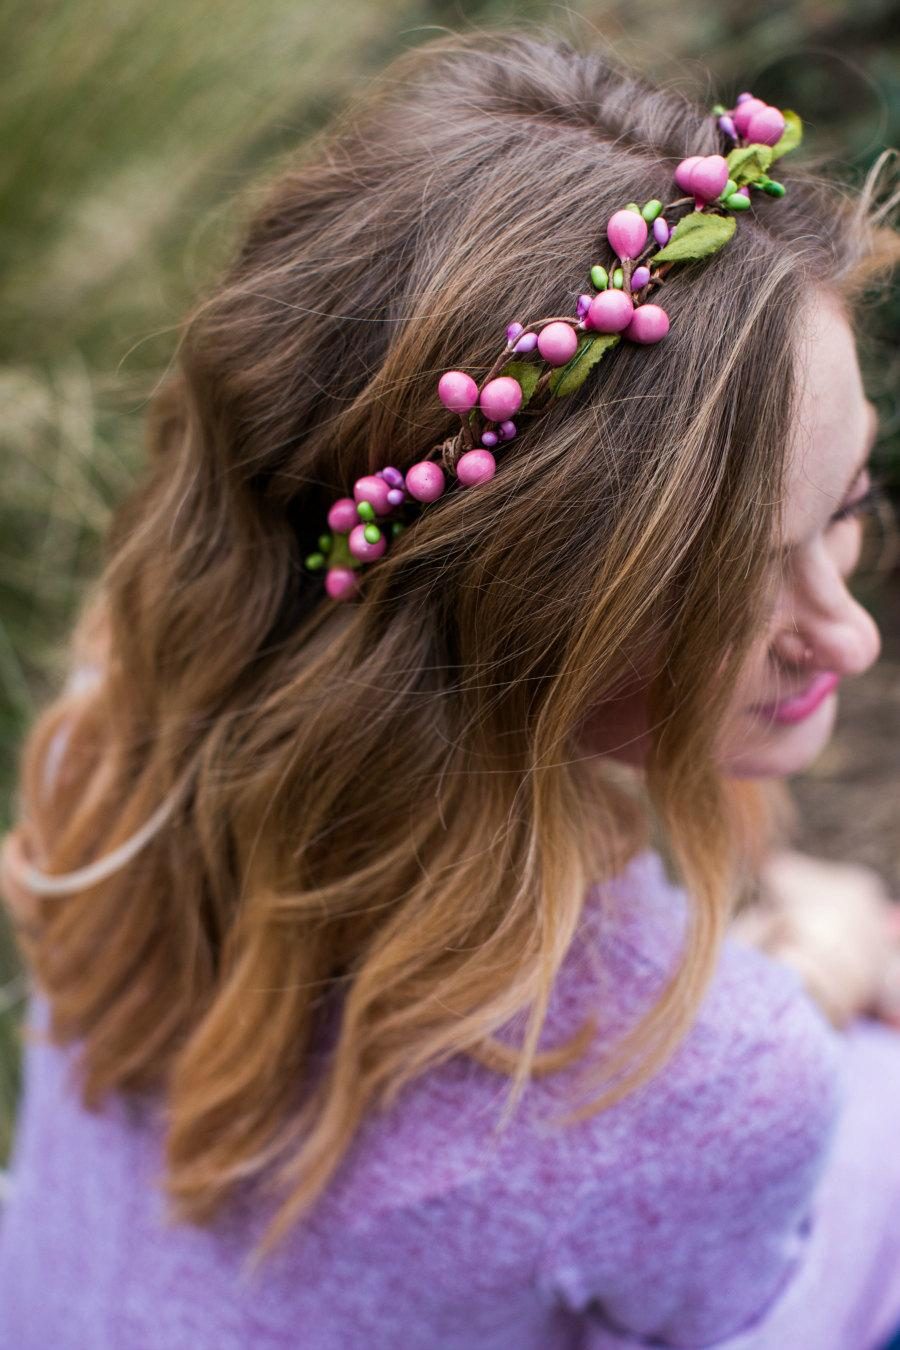 زفاف - Pink Floral Circlet, Berries Crown, Spring, Summer, Wedding, Bridesmaids, Headpiece, flower Girl, bridal hair, festival, bridal crown